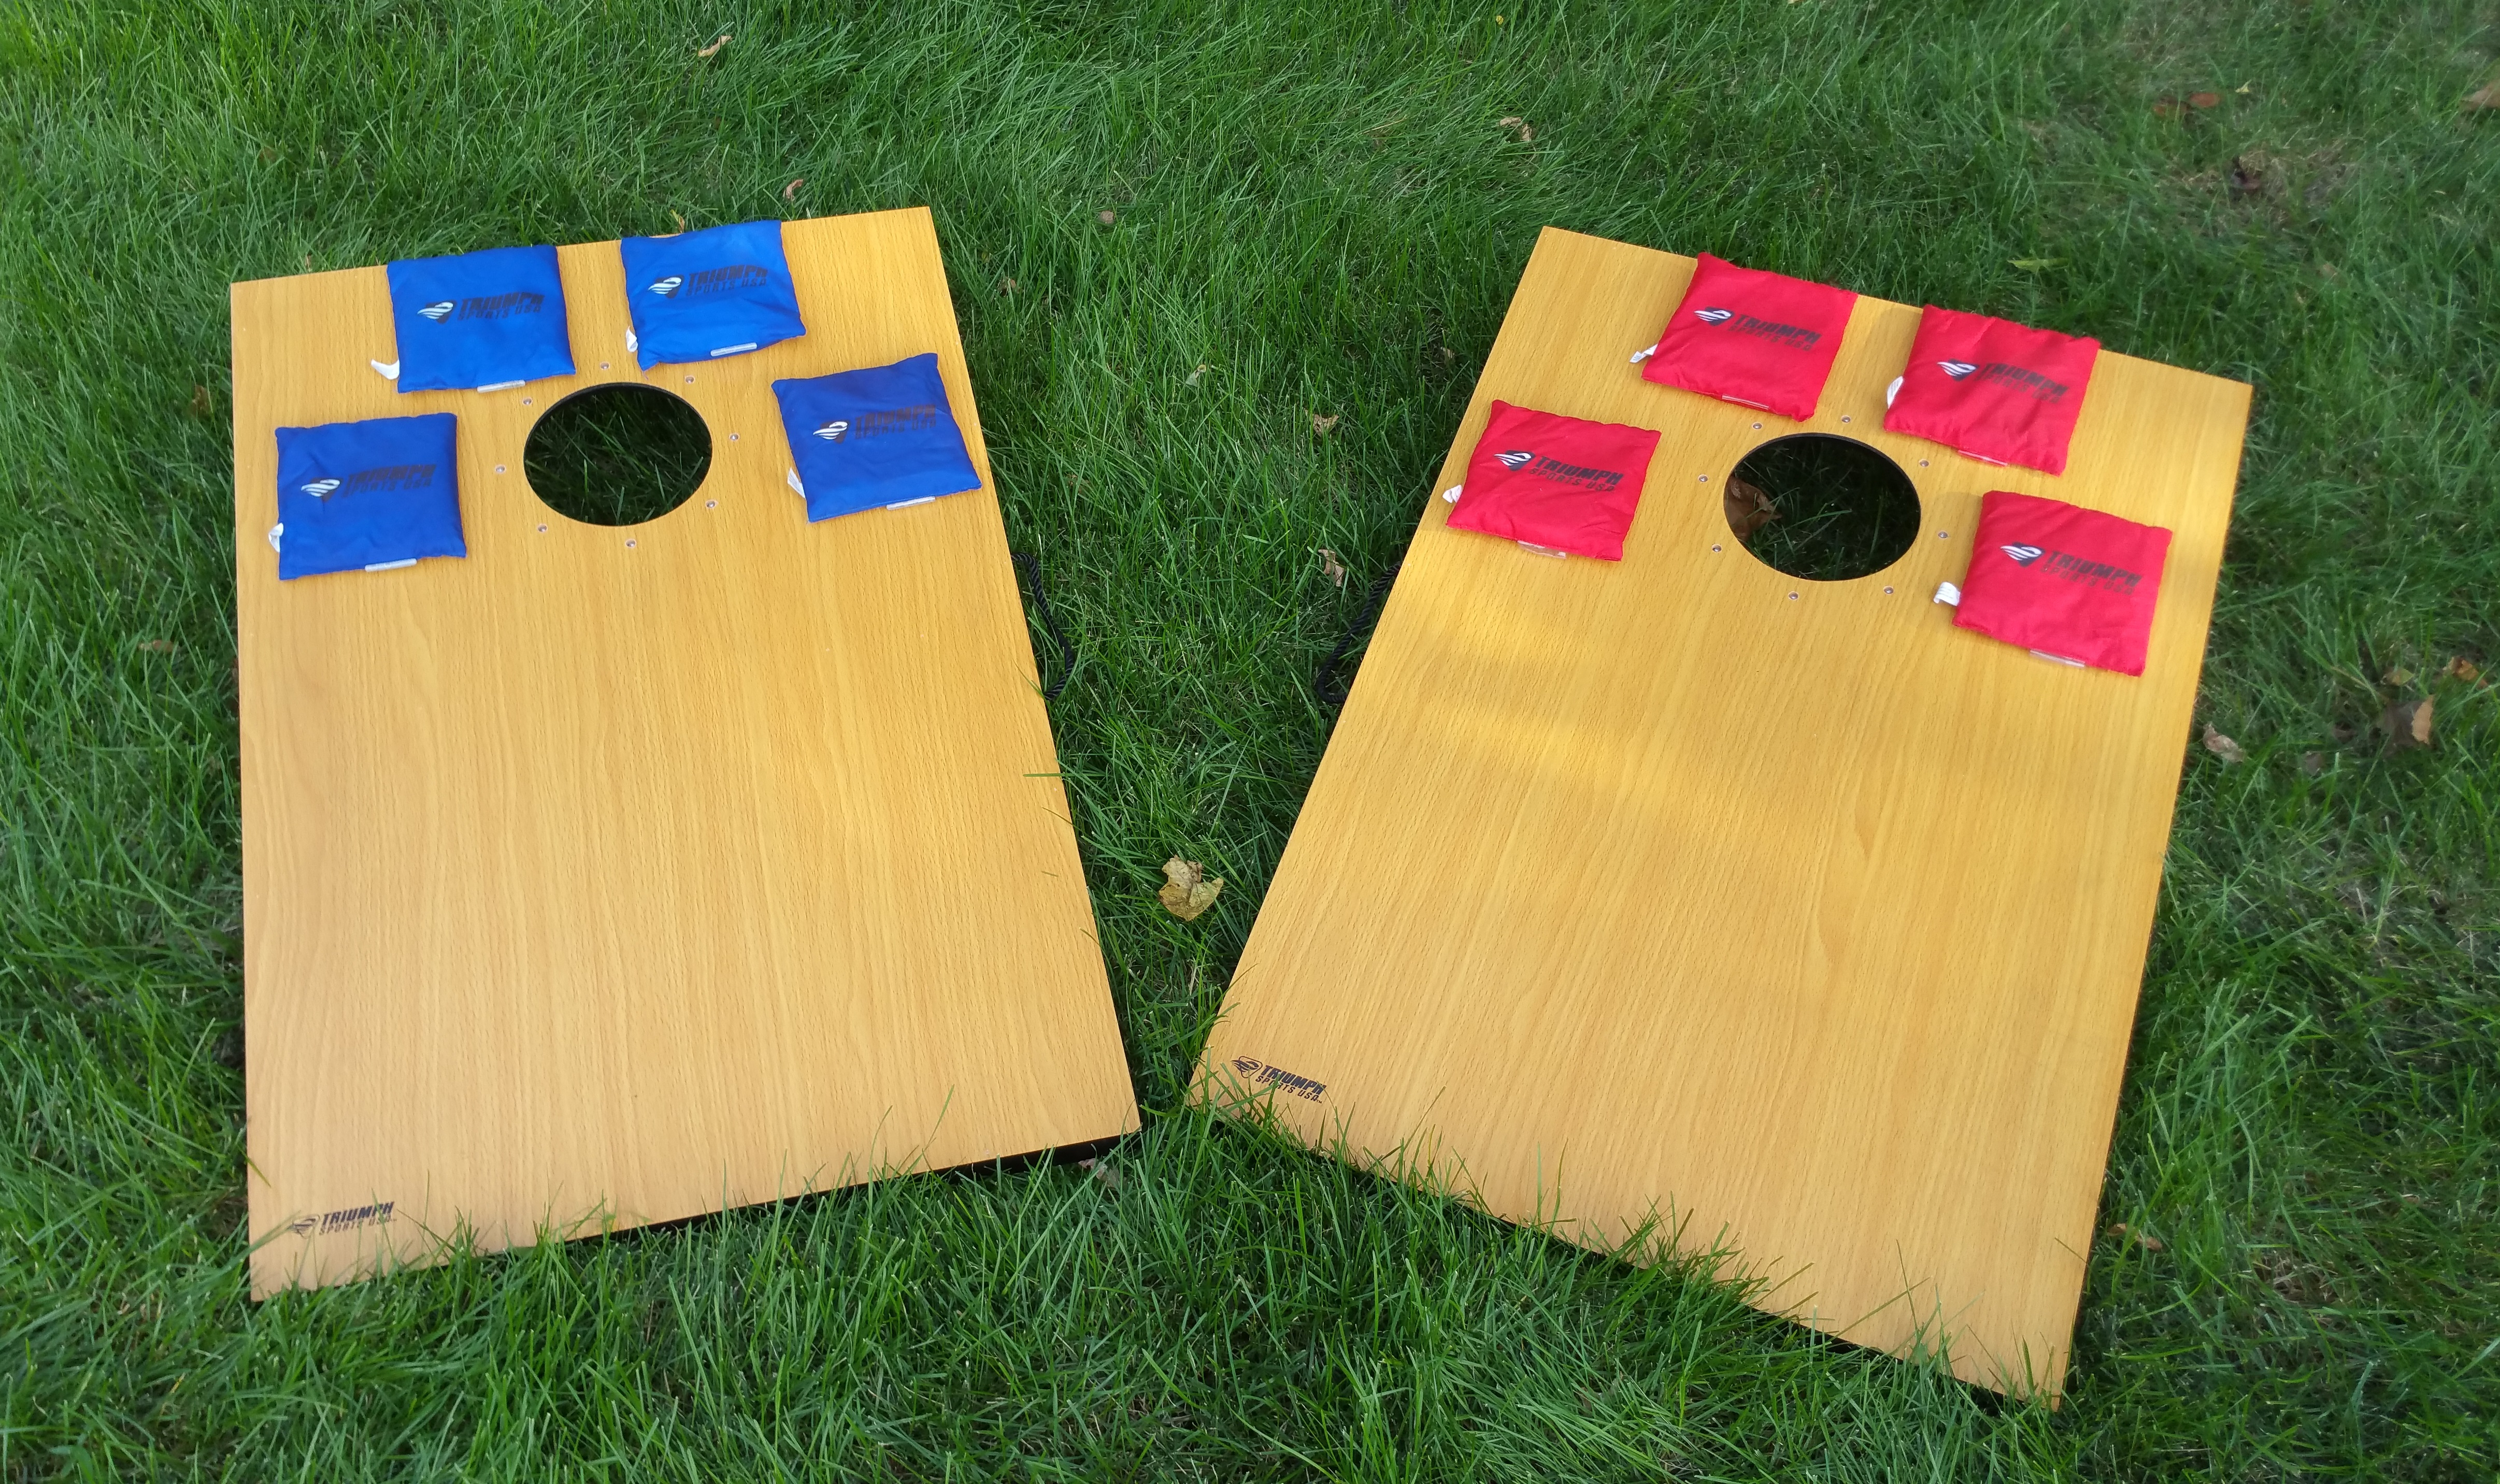 Led Tournament Bean Bag Cornhole Game Set